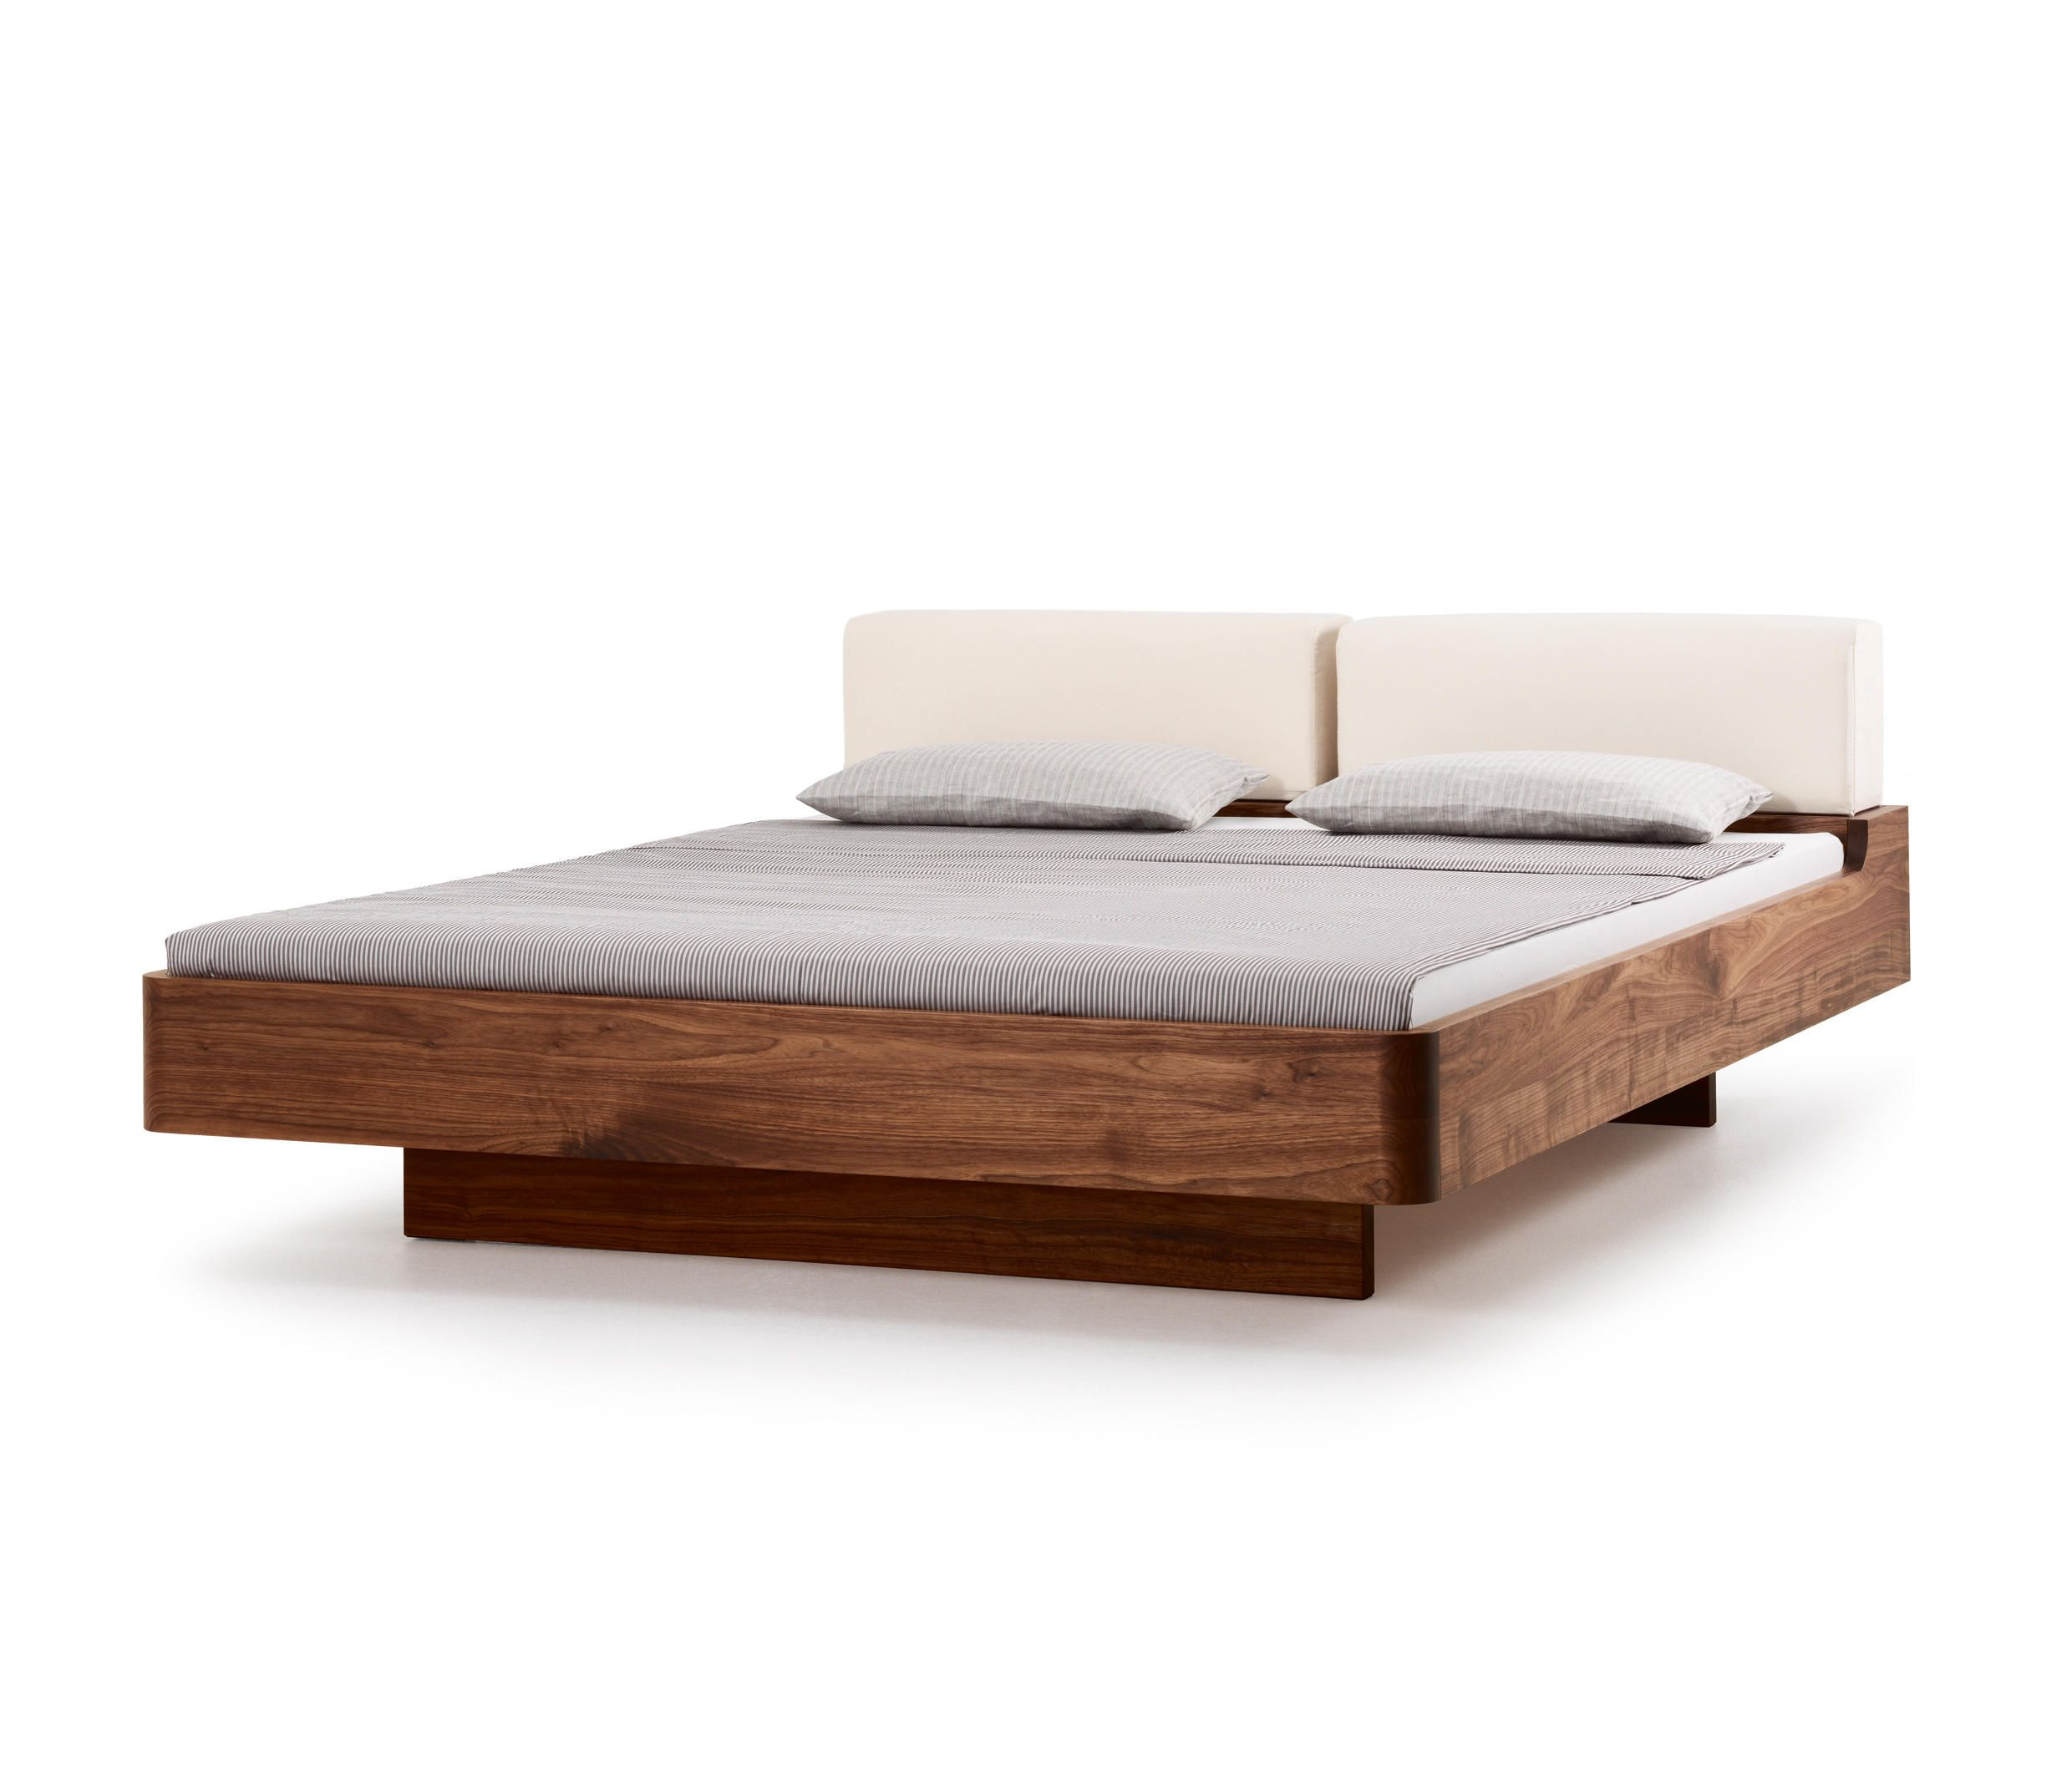 com ca bed by holzmanufaktur double beds for the home